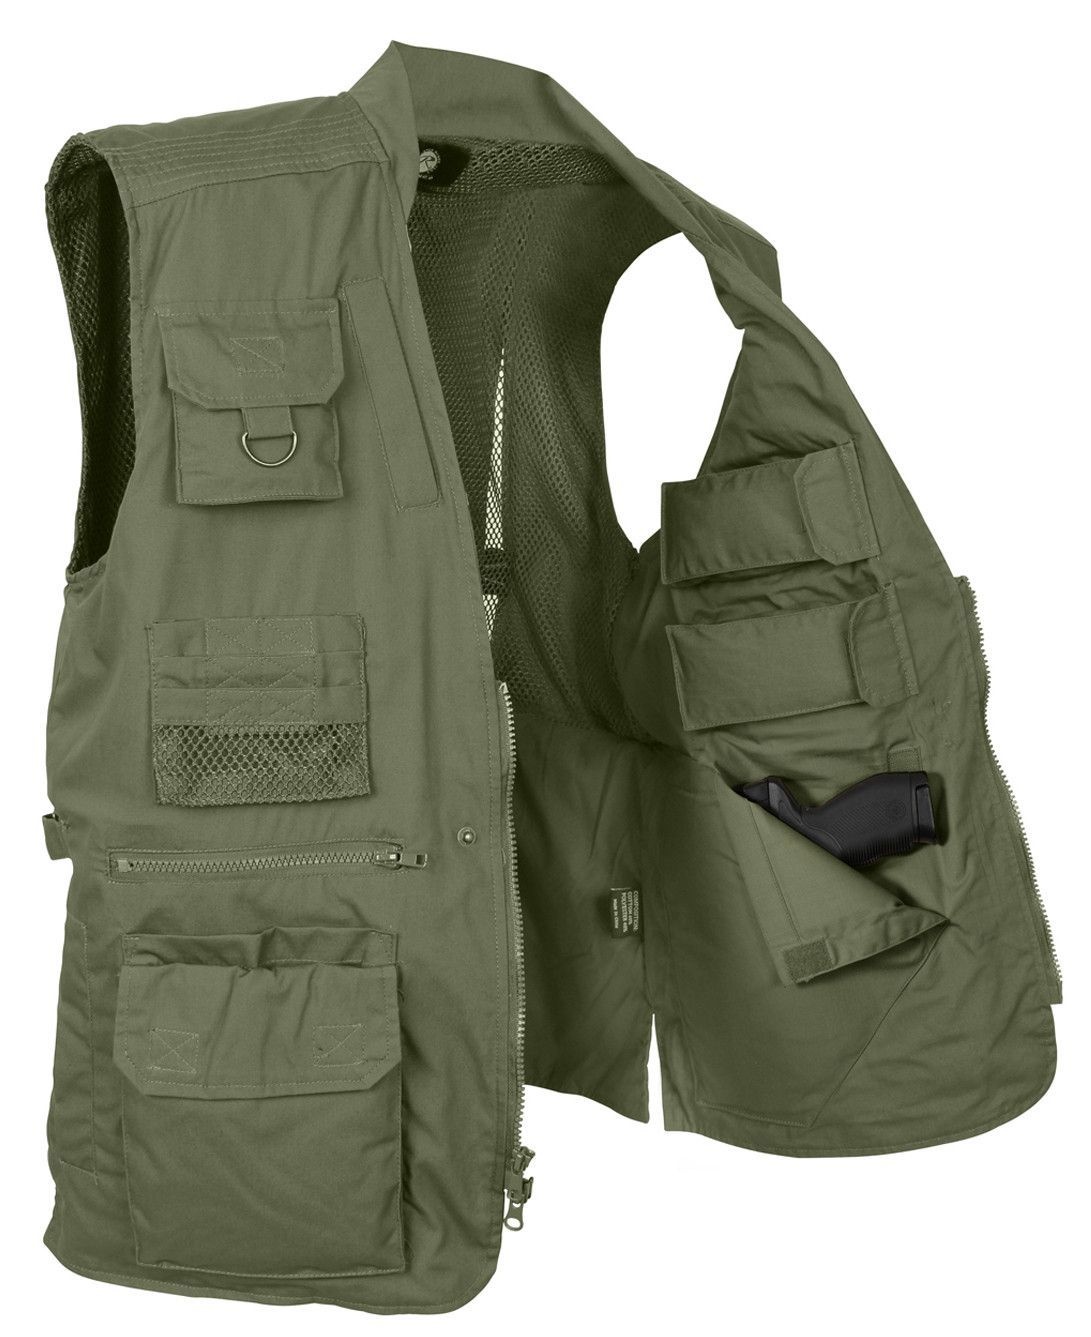 6105640f6f91b Plainclothes Concealed Carry Vest. Plainclothes Concealed Carry Vest  Tactical Clothing ...